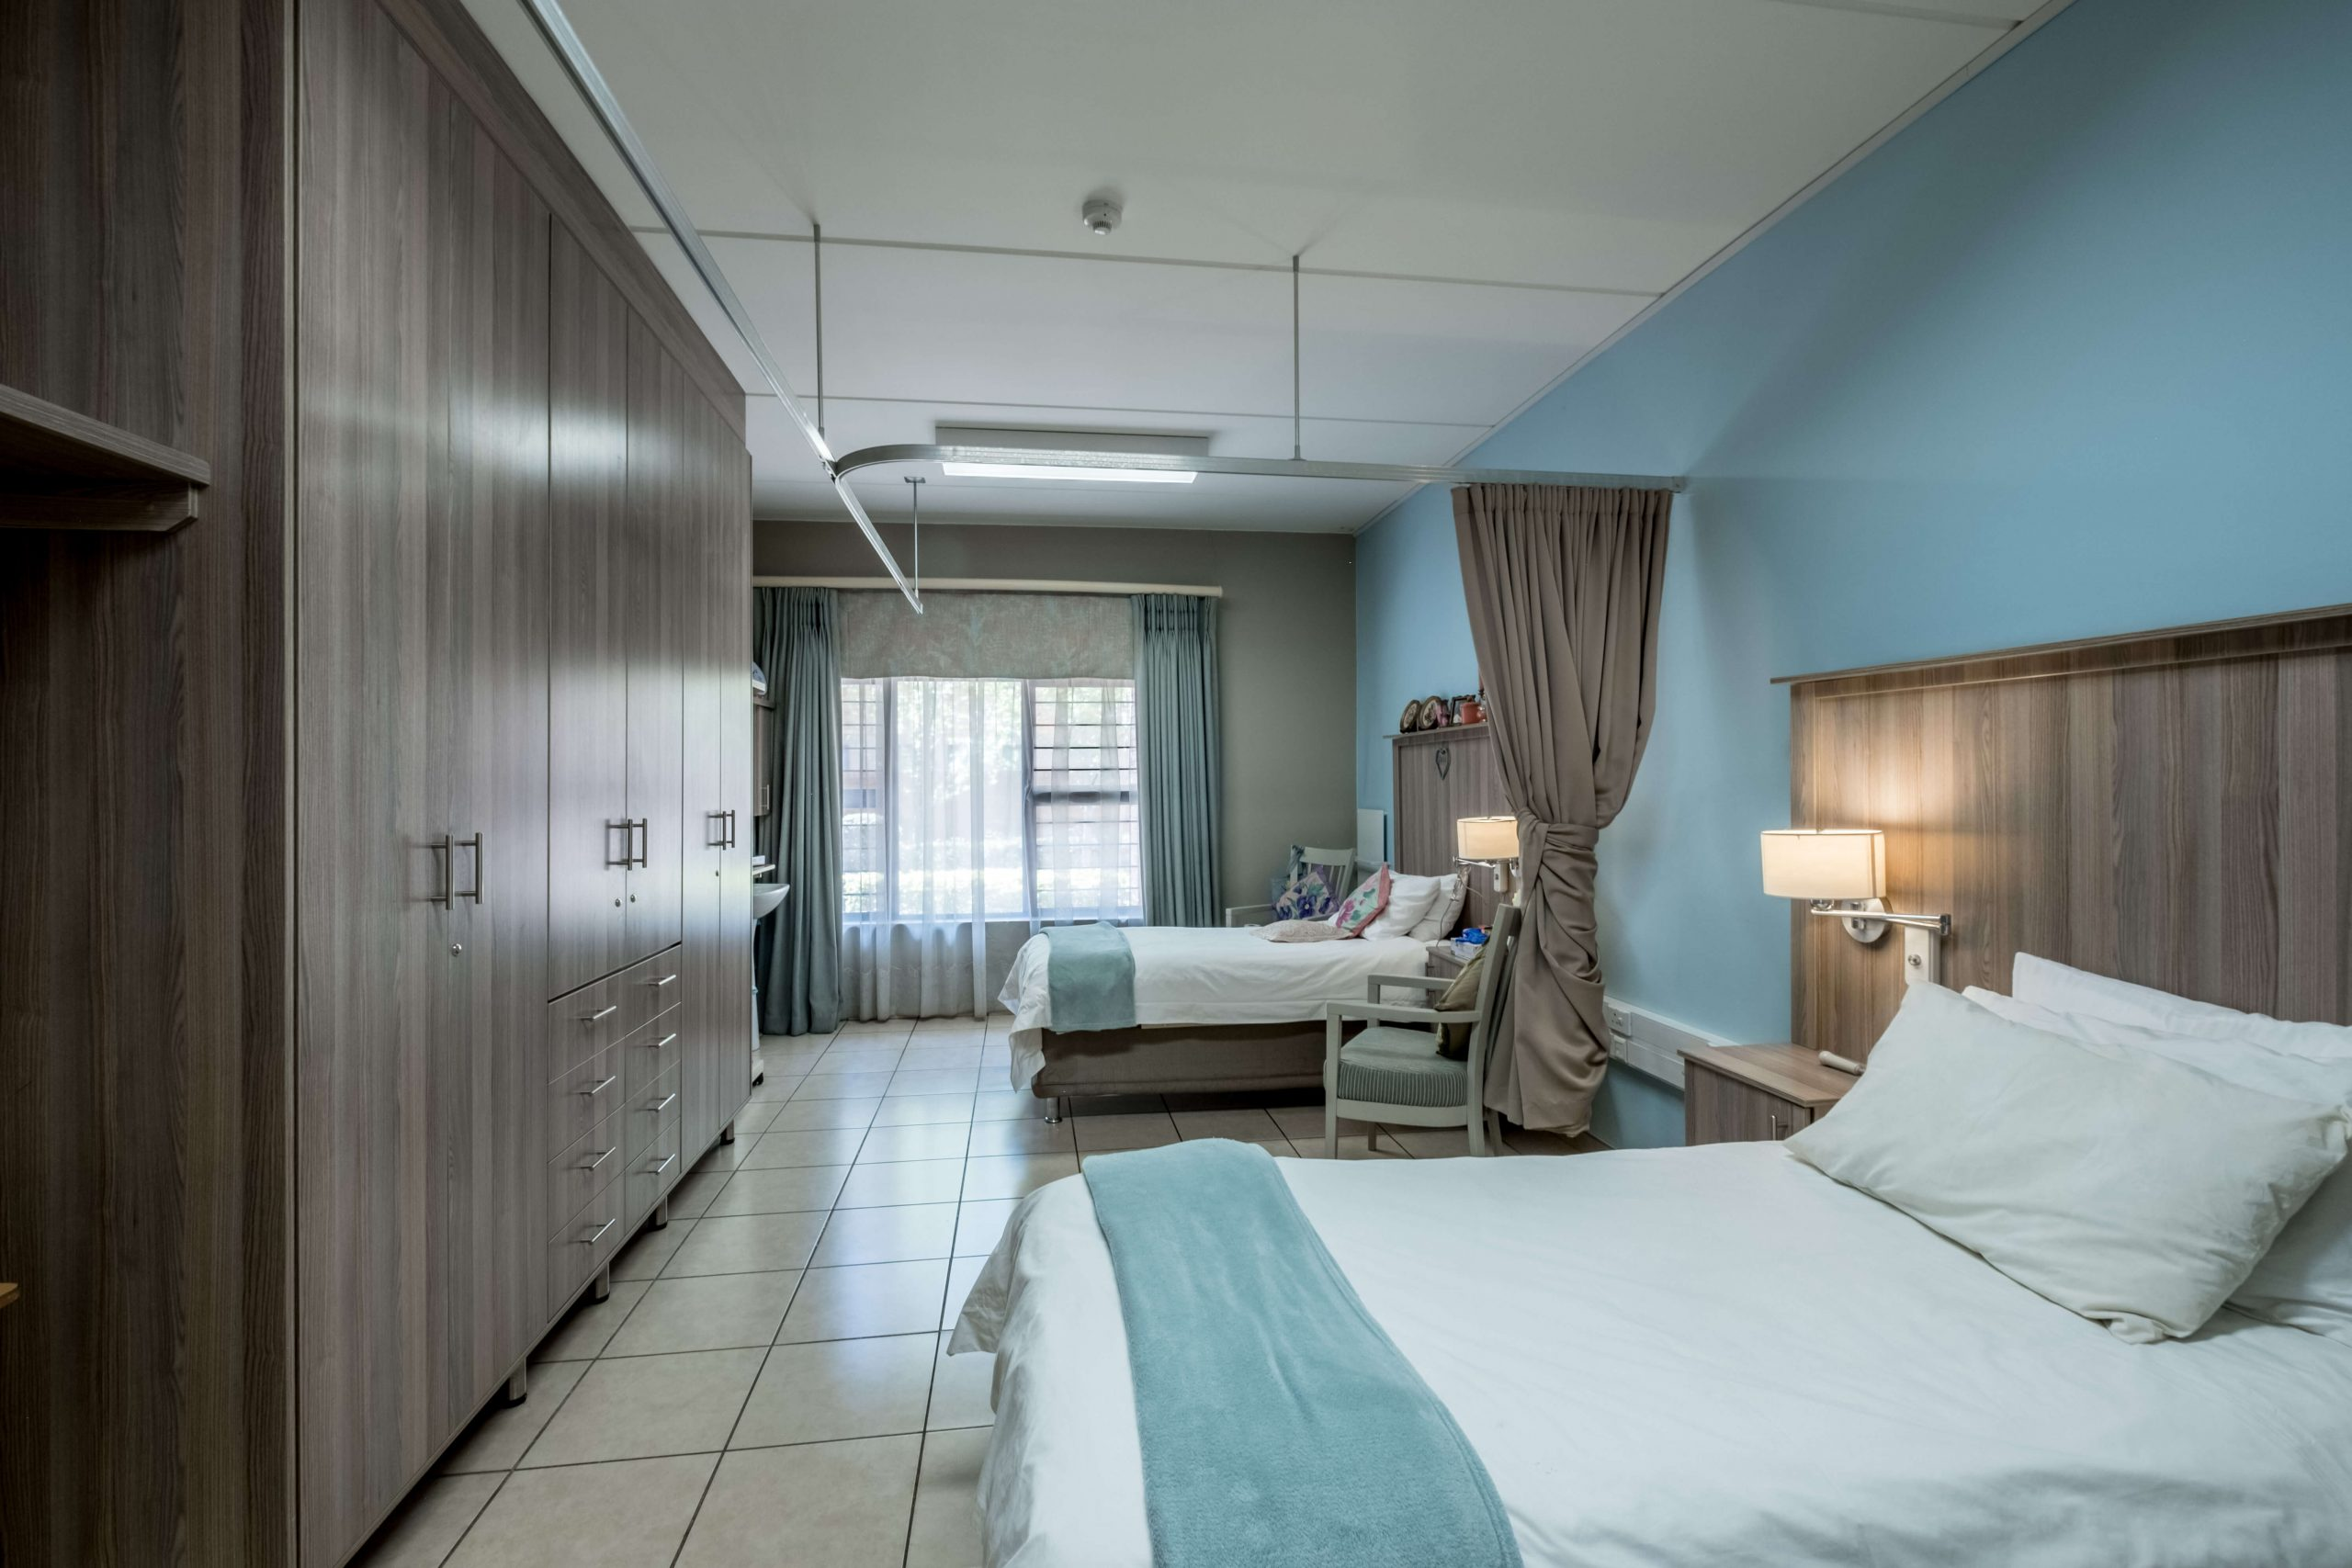 La Vie Care Brentmed Shared Room